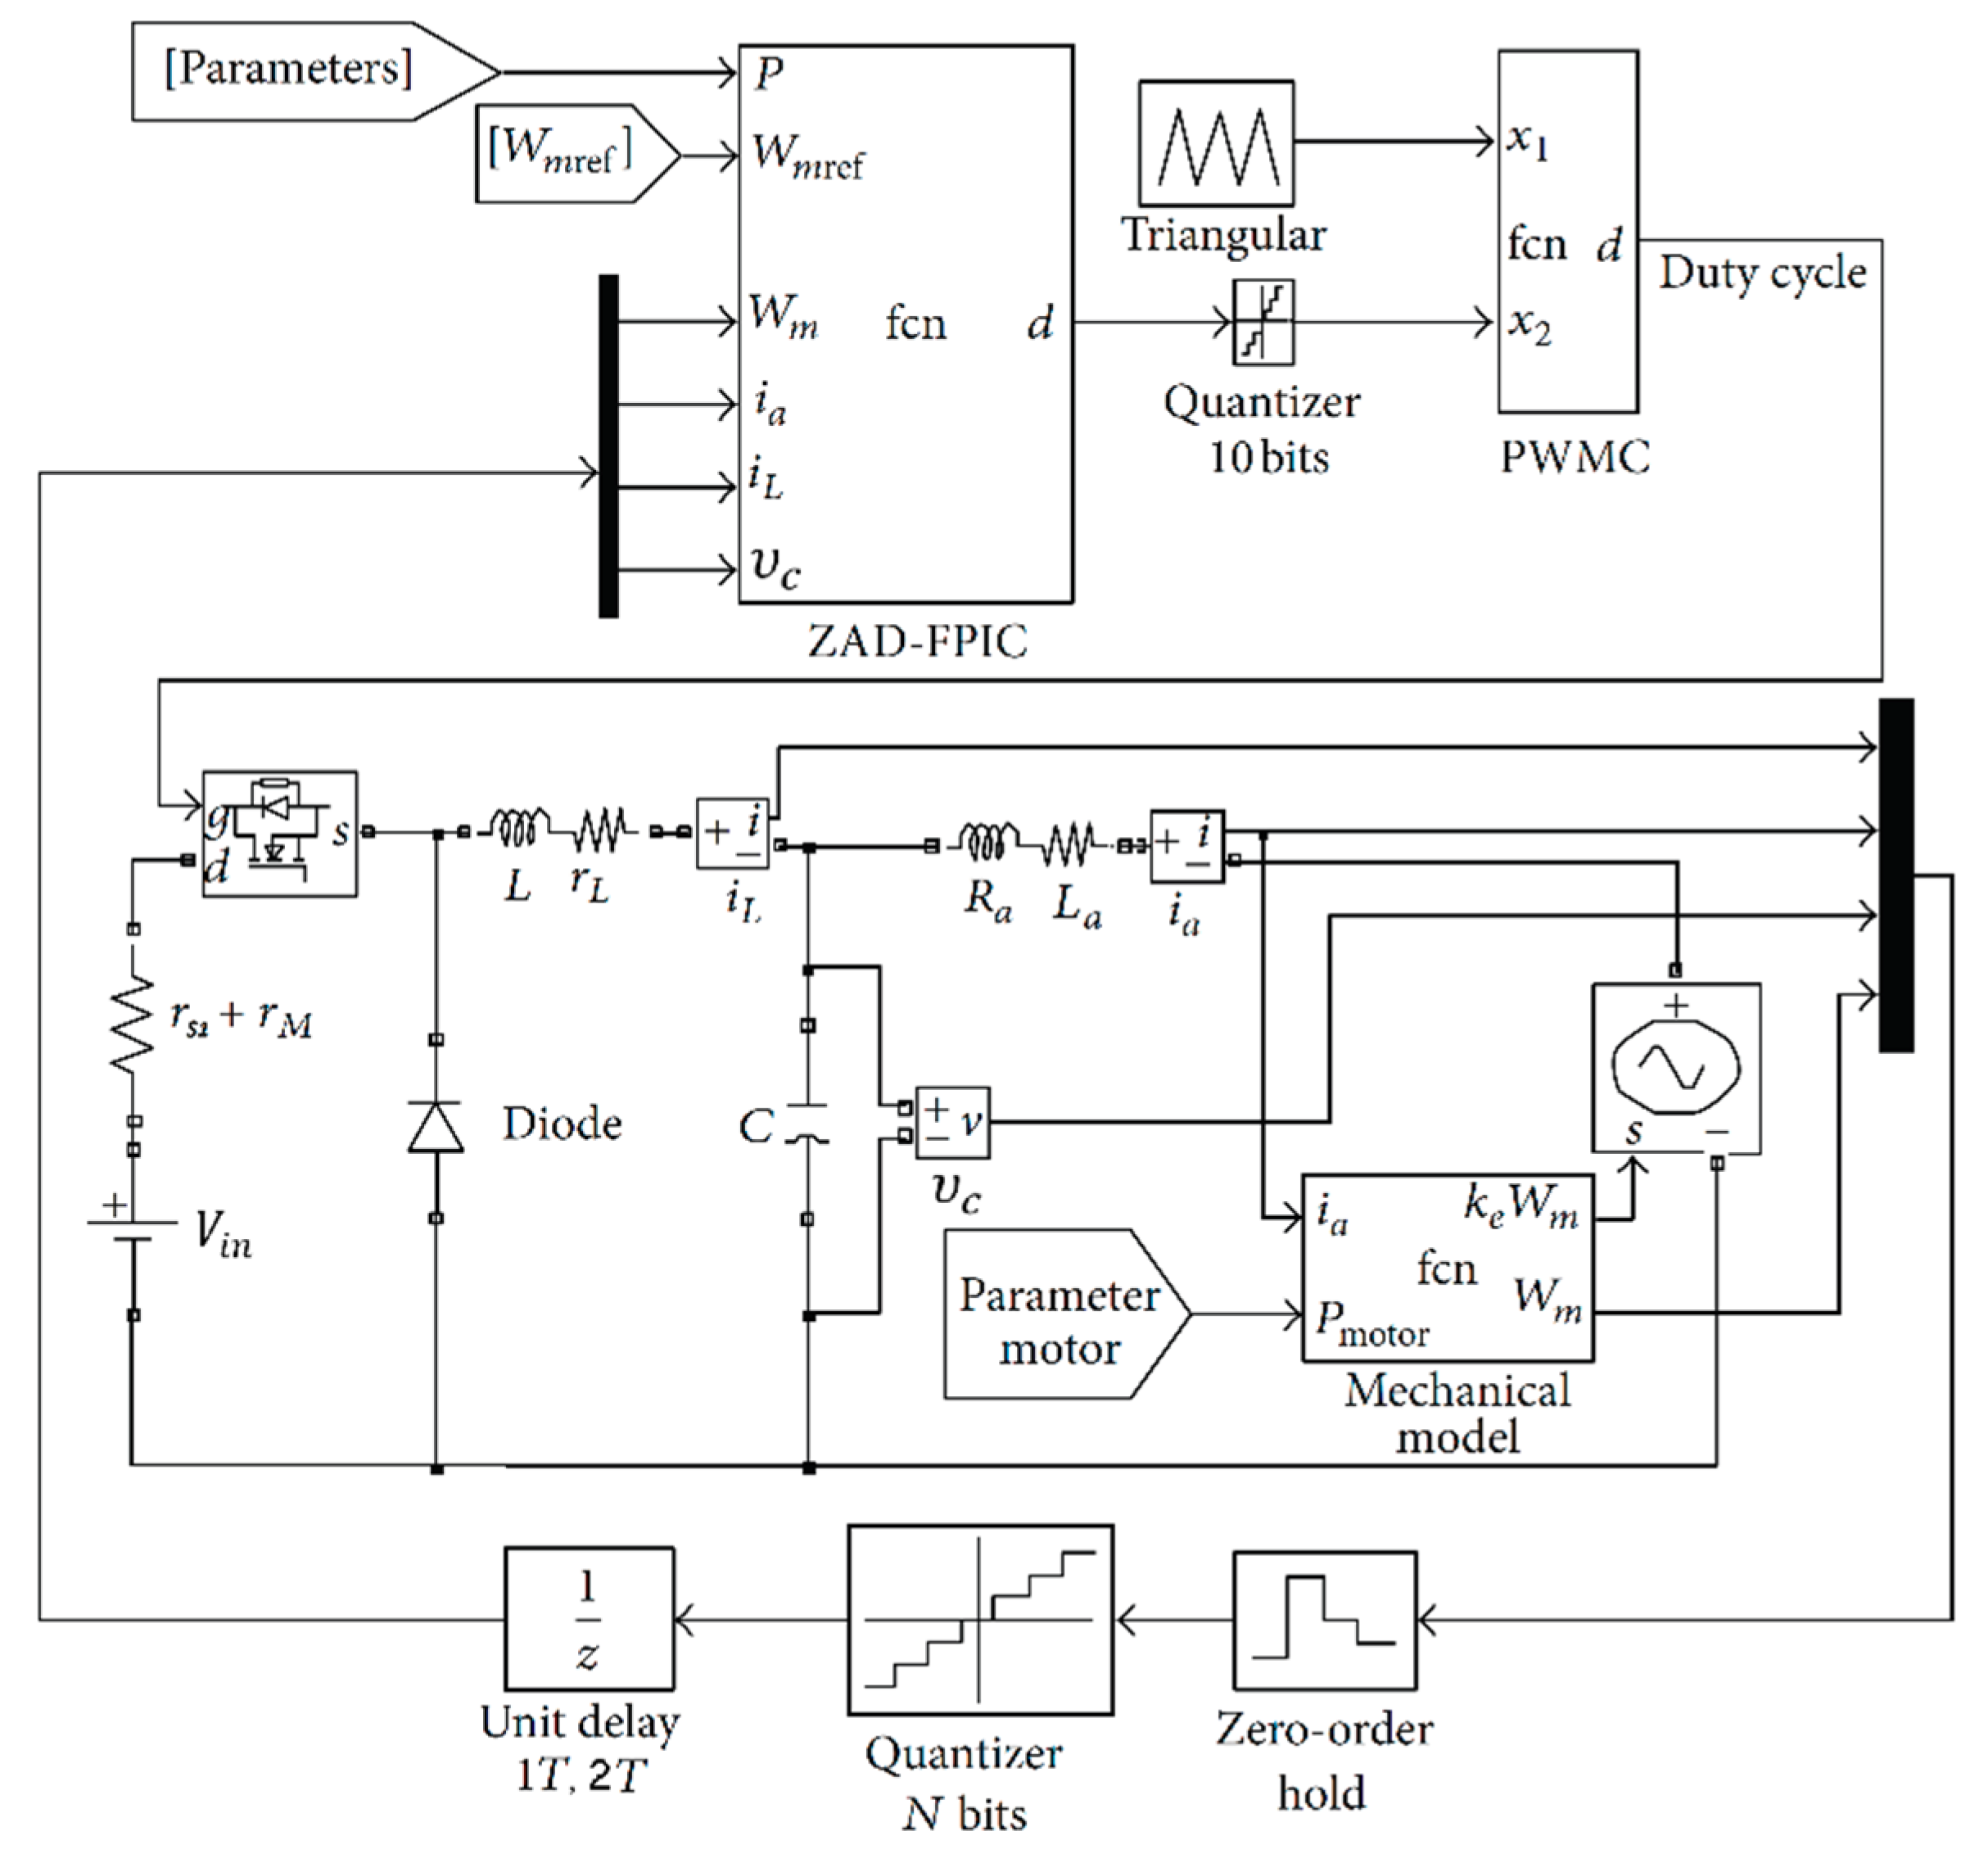 Energies Free Full Text Dynamic Analysis Of A Permanent Magnet Automations Gt Motor Control Circuits Pwm Speed 11 03388 G006